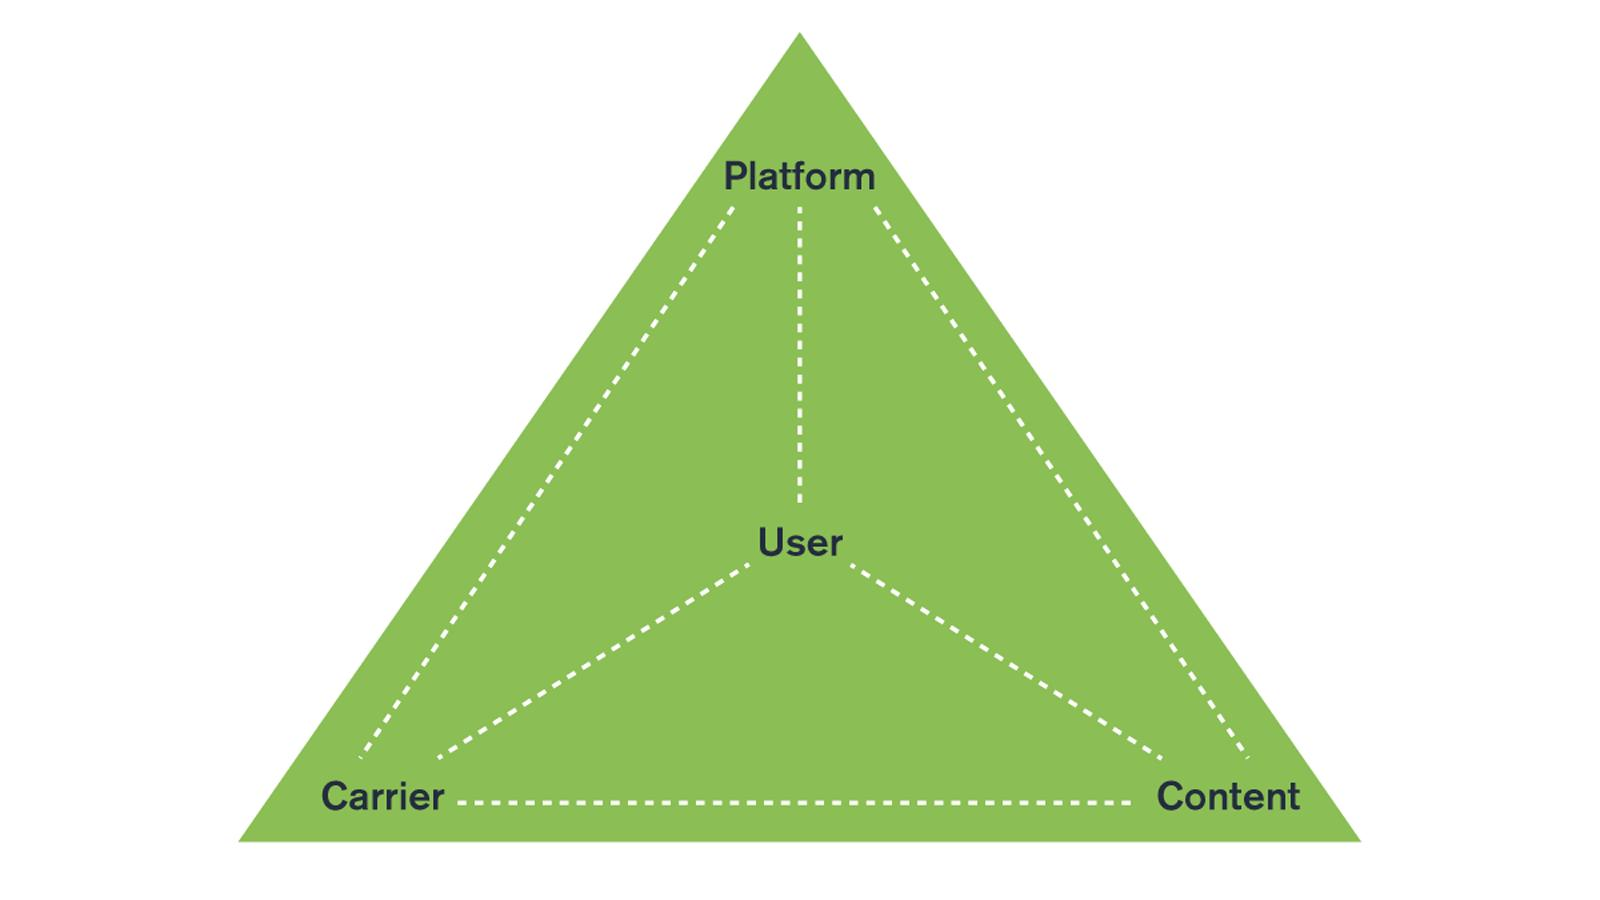 Content, Carrier, Platform, User